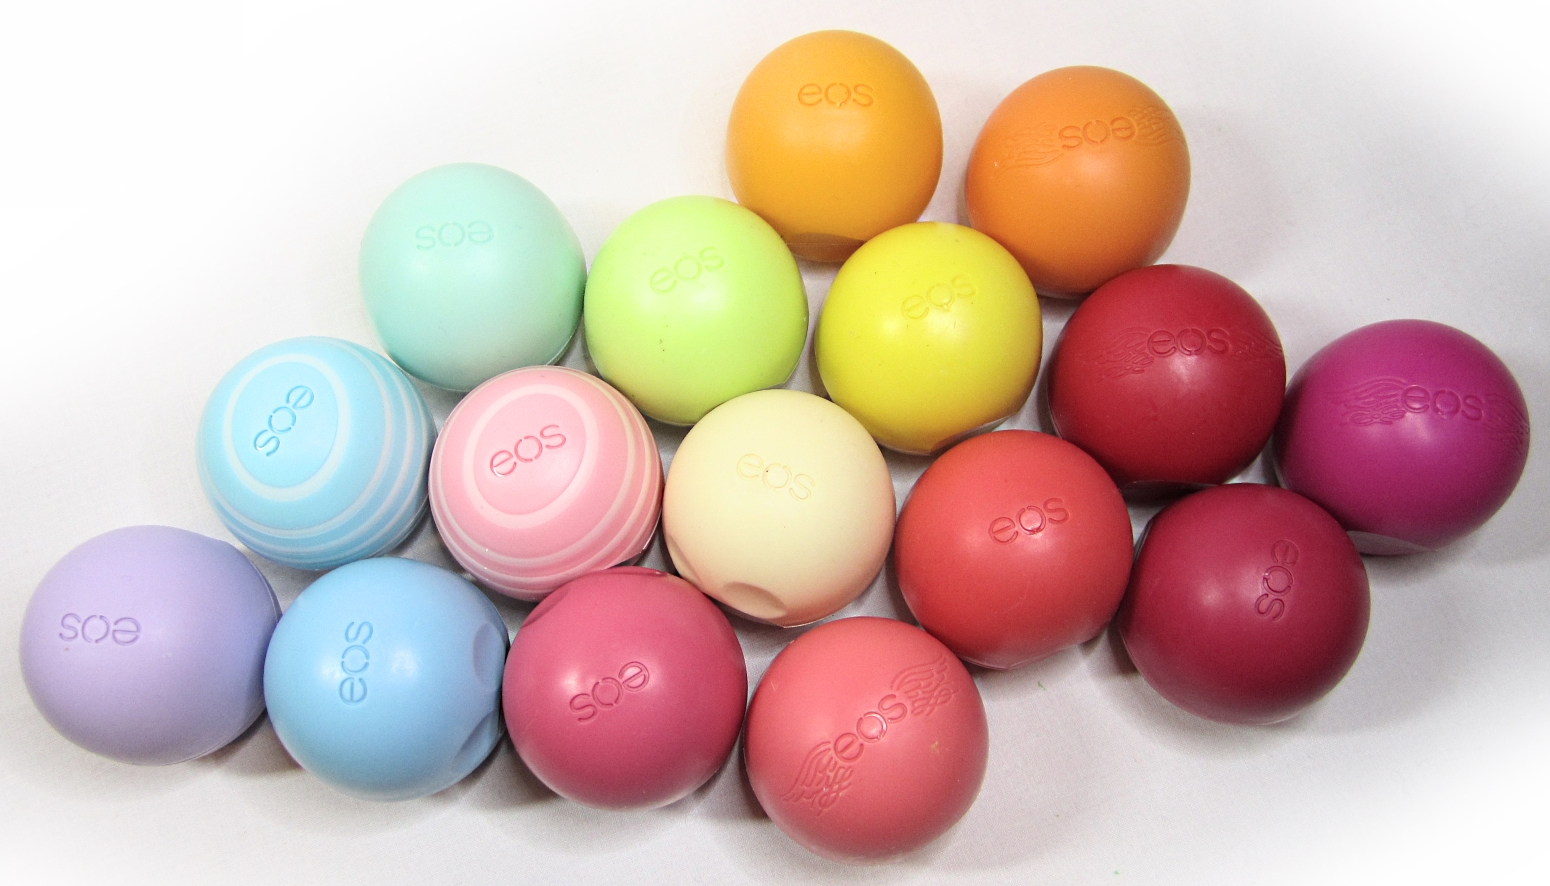 eos Smooth Sphere Lip ...